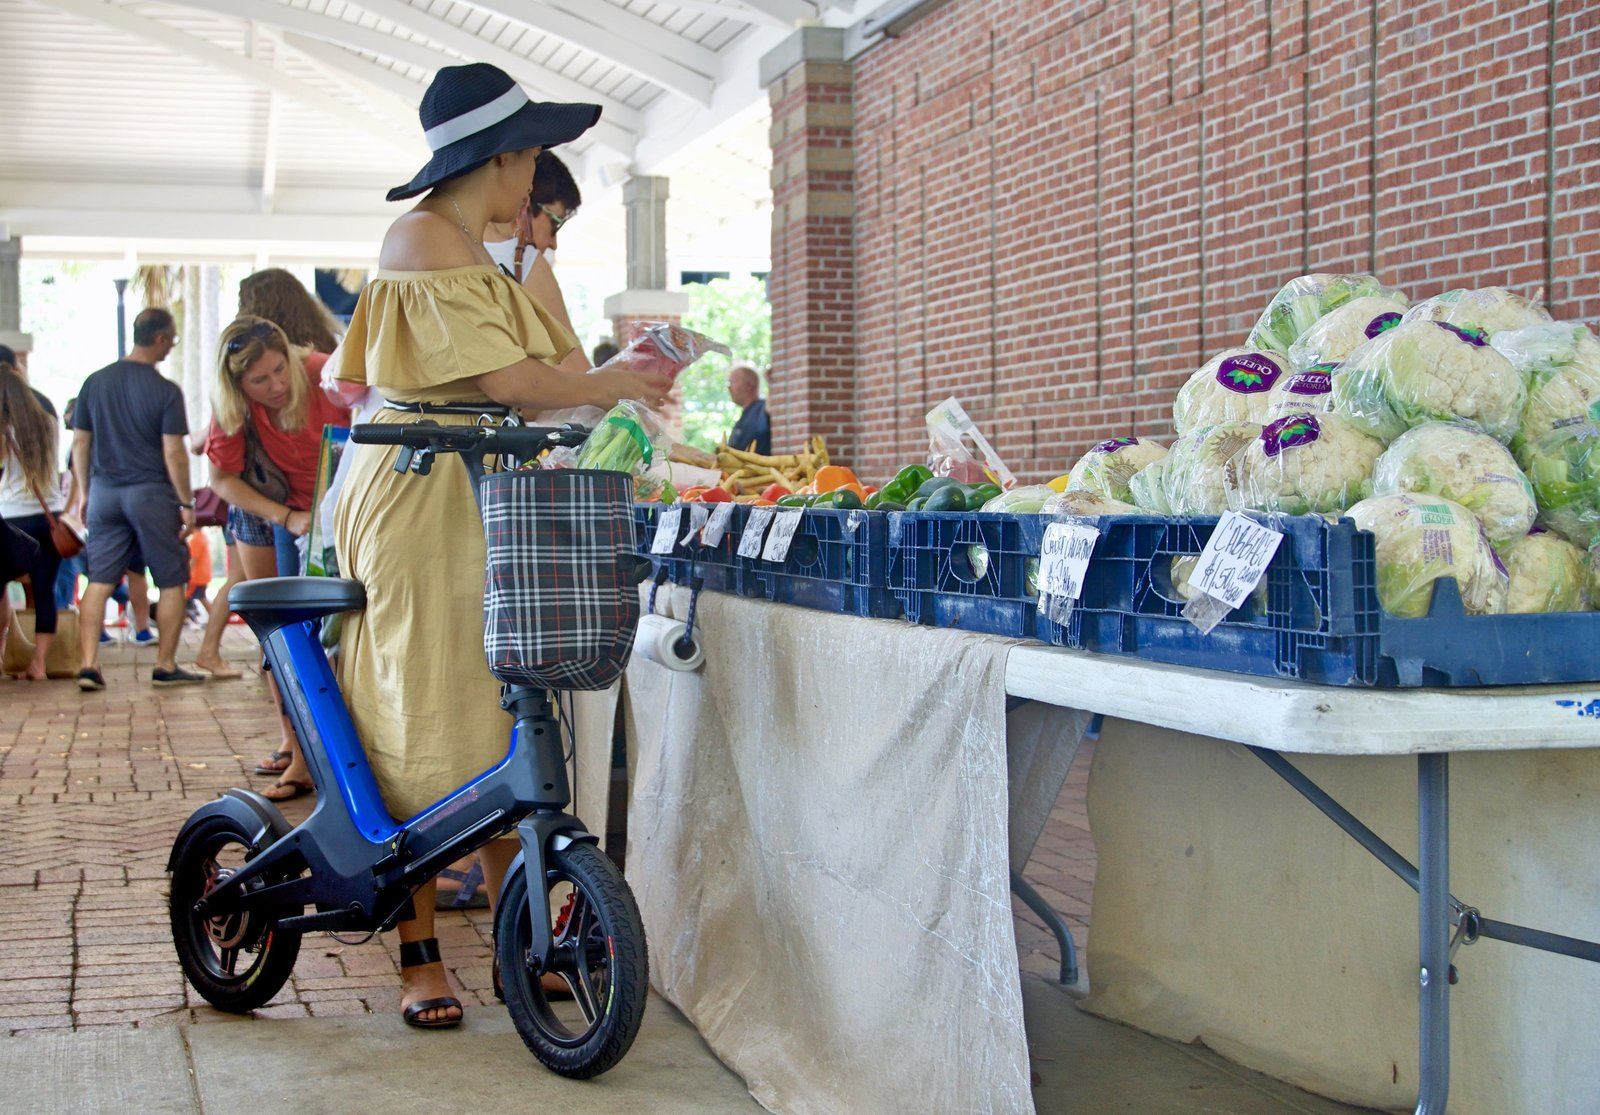 Blue Go-Bike M3 at farmers market